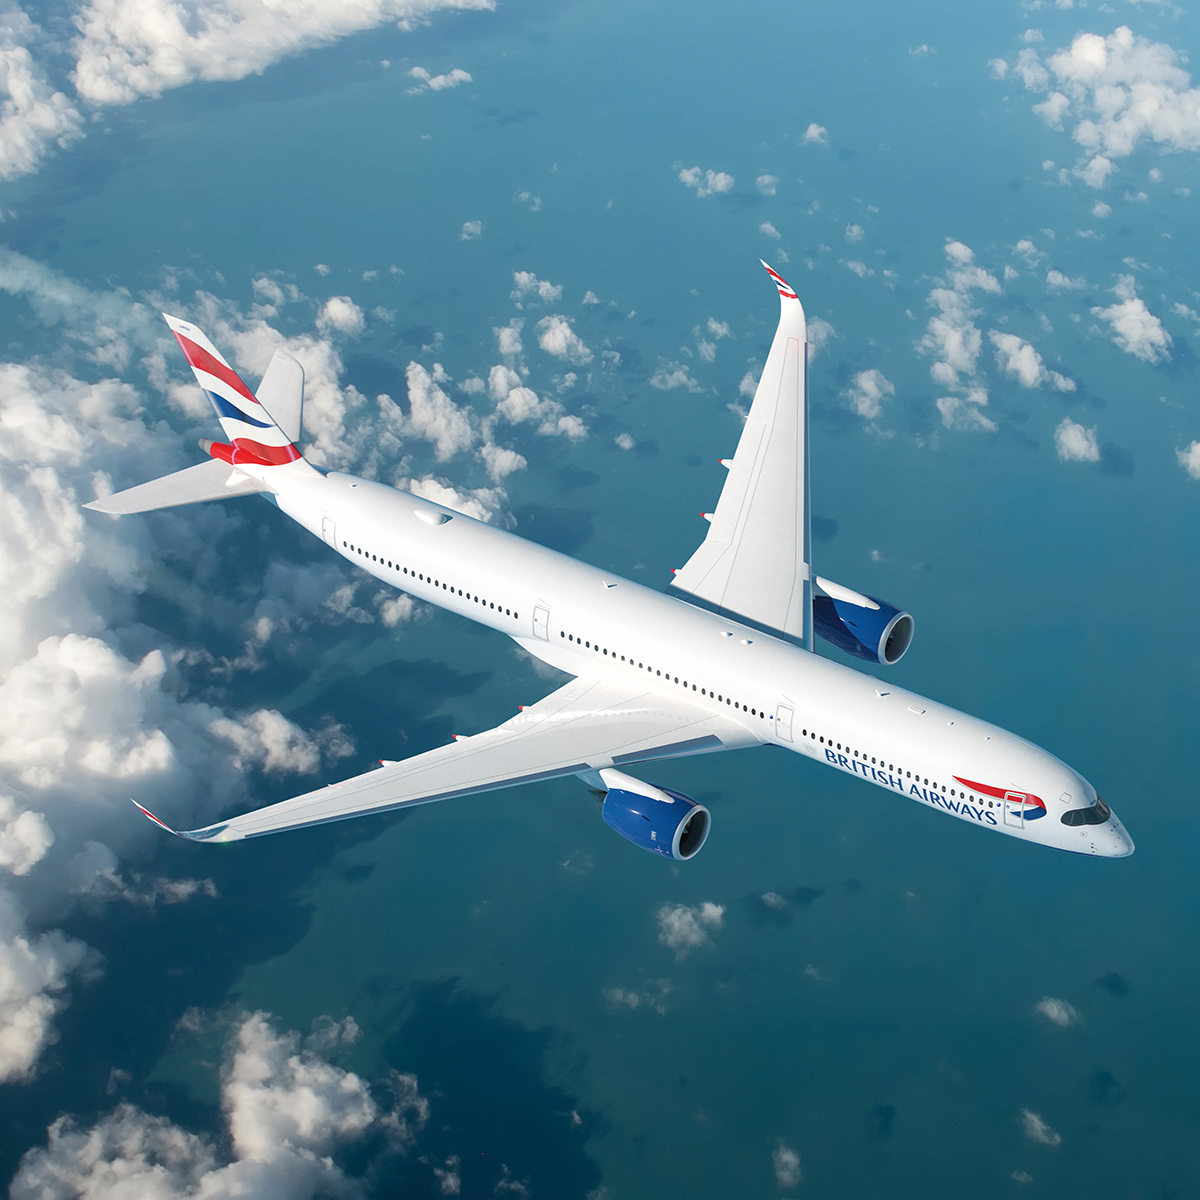 Imagem da British Airways